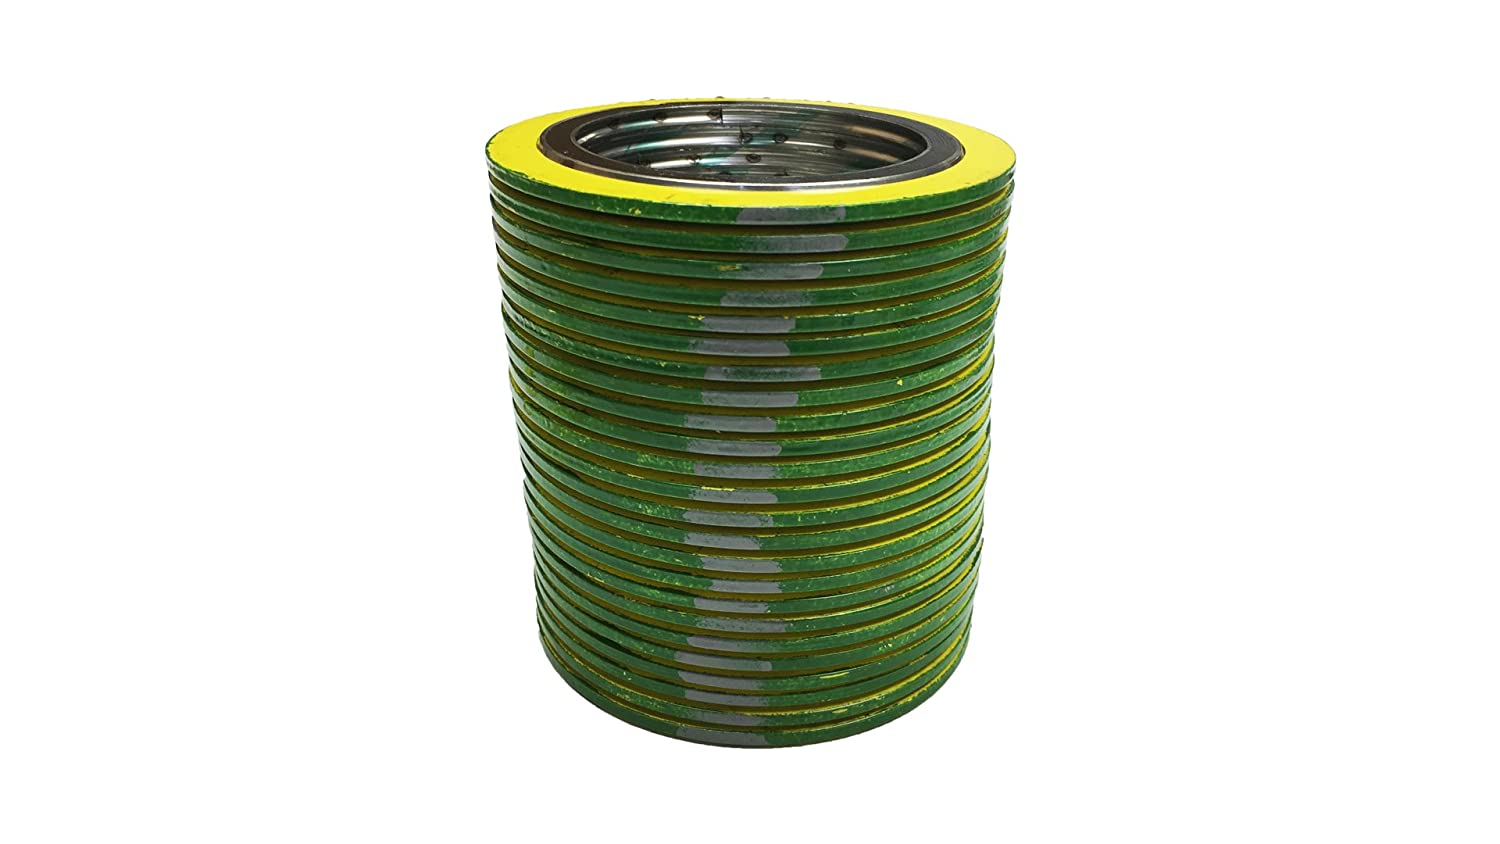 Pressure Class 1500# for 14 Pipe Sterling Seal 900014316GR1500X24 316L Stainless Steel Spiral Wound Gasket with Flexible Graphite Filler Pack of 24 Green Band with Grey Stripes